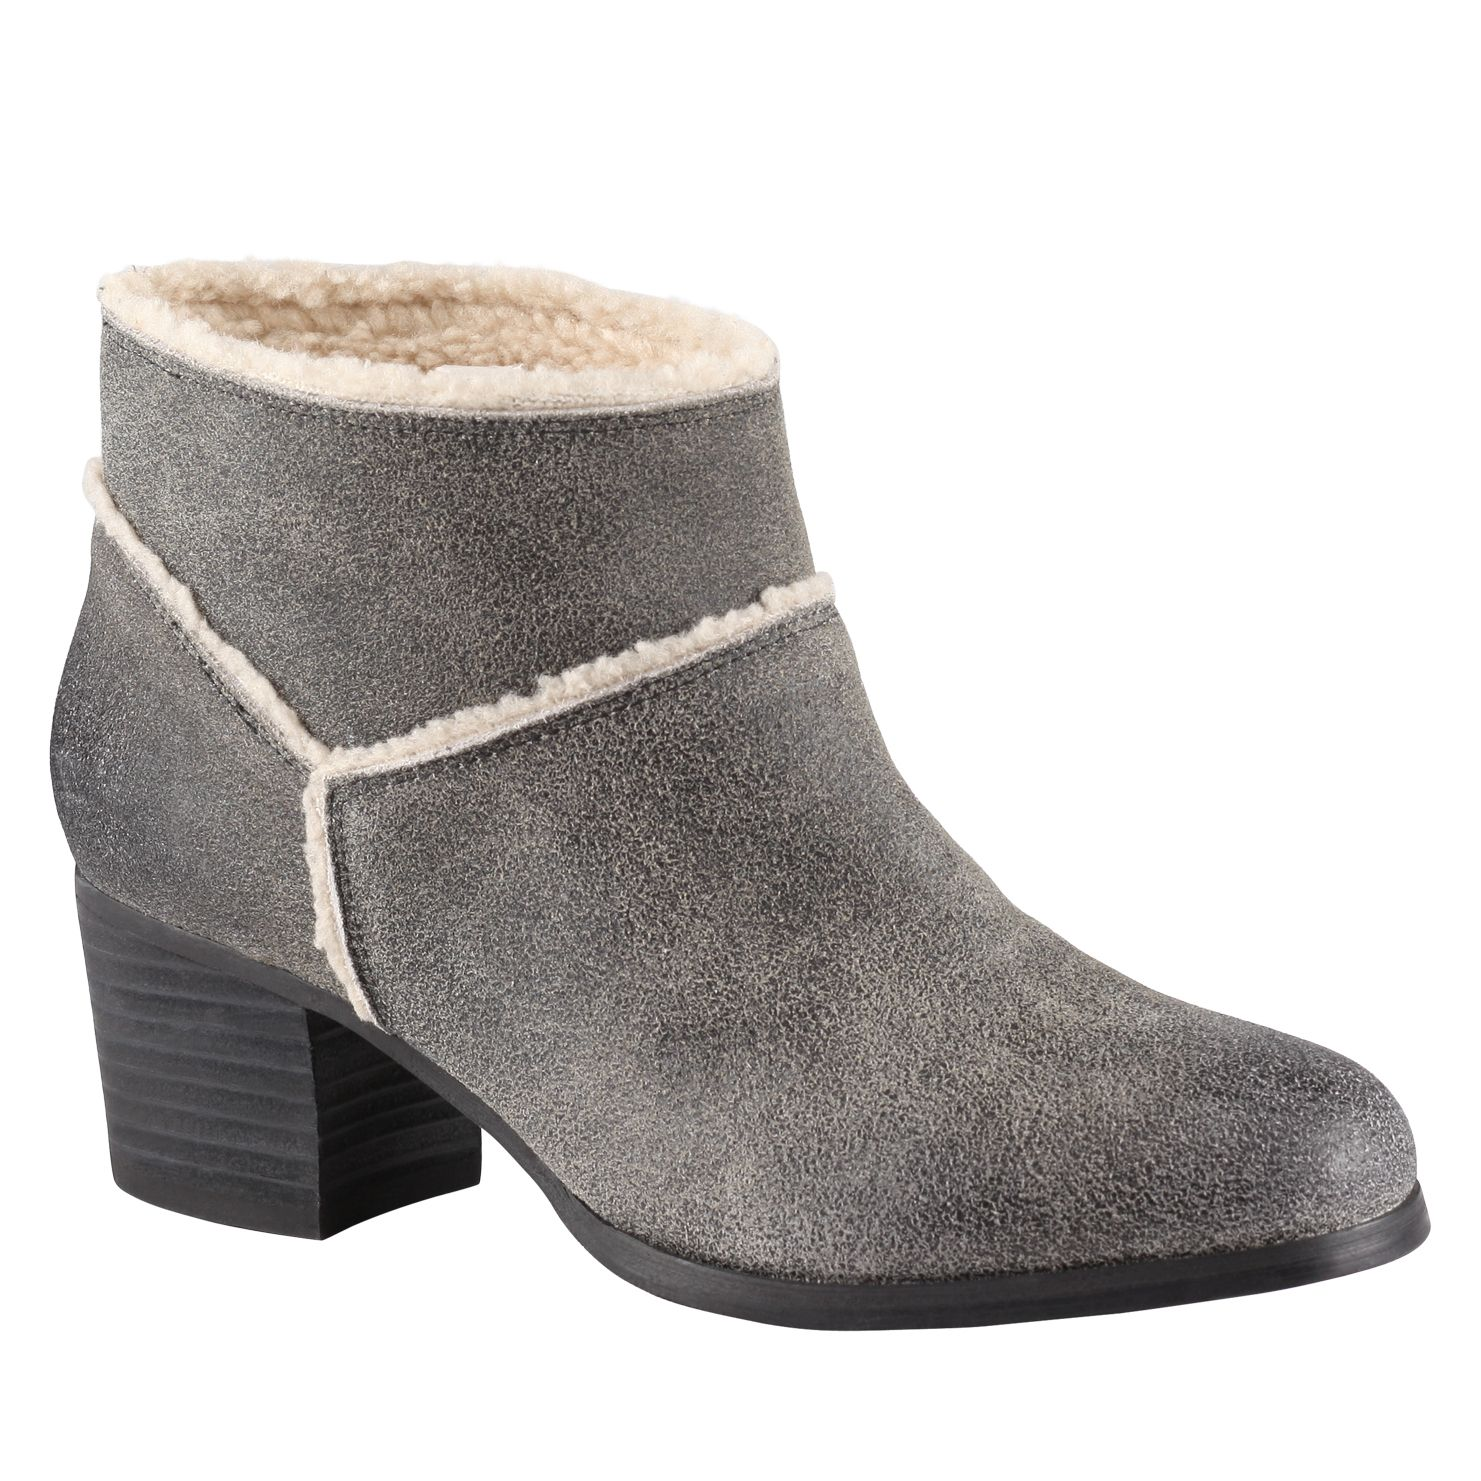 Cradic alomond toe block heel boots